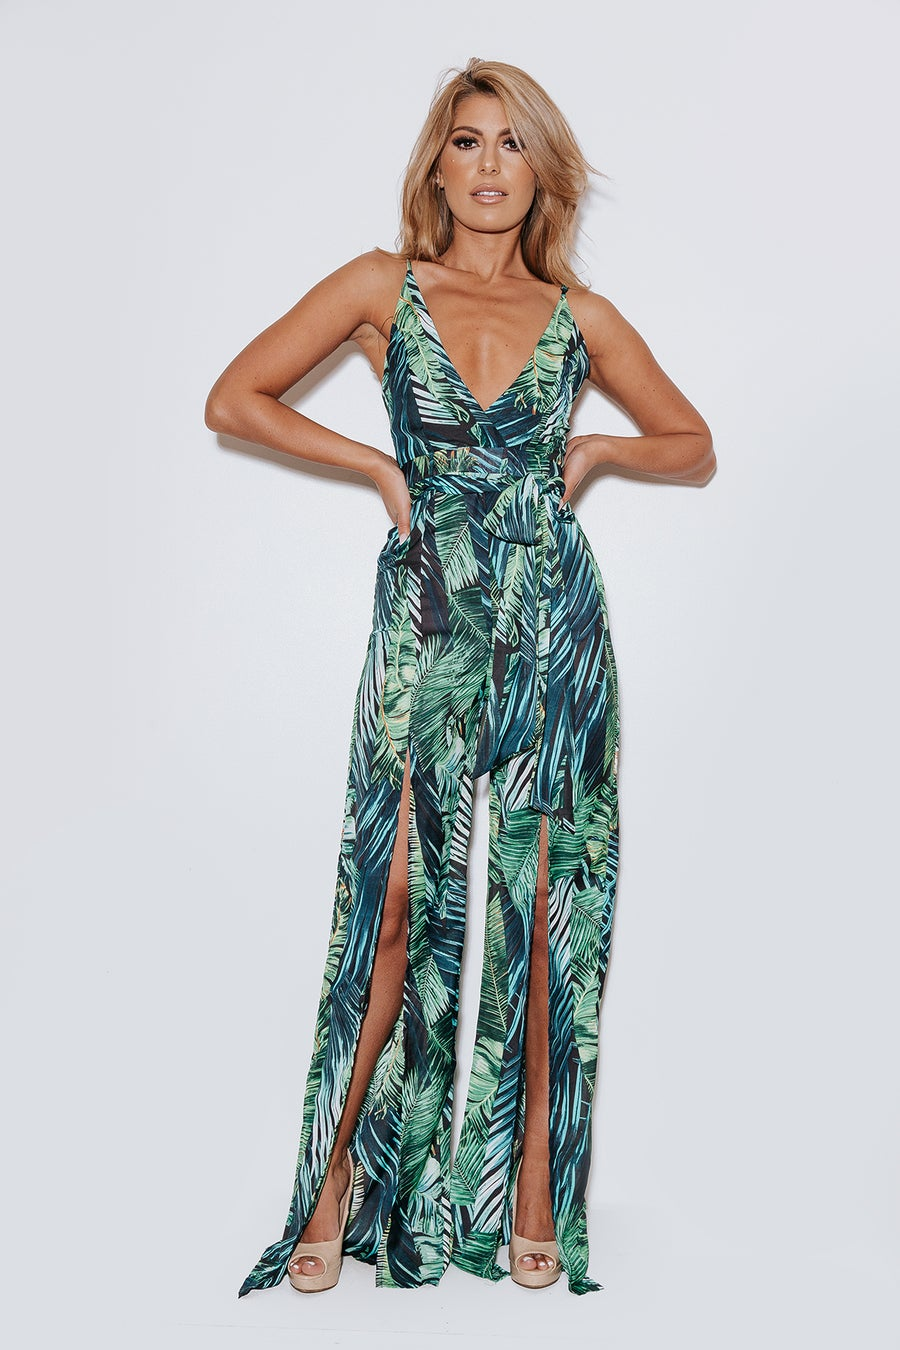 Image of 'Hawaiian tropics' Jumpsuit (50% off)